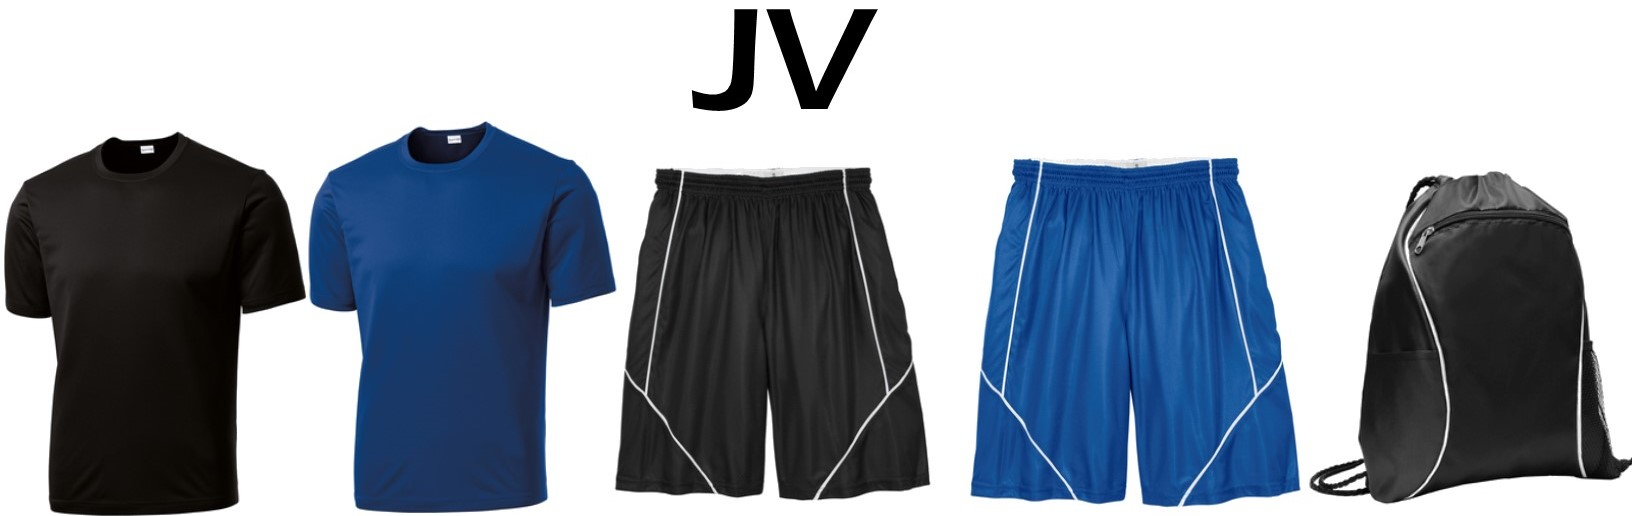 JV Package - $50.00 - 2- ST350 Dri-Fit T-Shirts 1- T565 REVERSIBLE Athletic Shorts 1- BG613 Cinch Pack